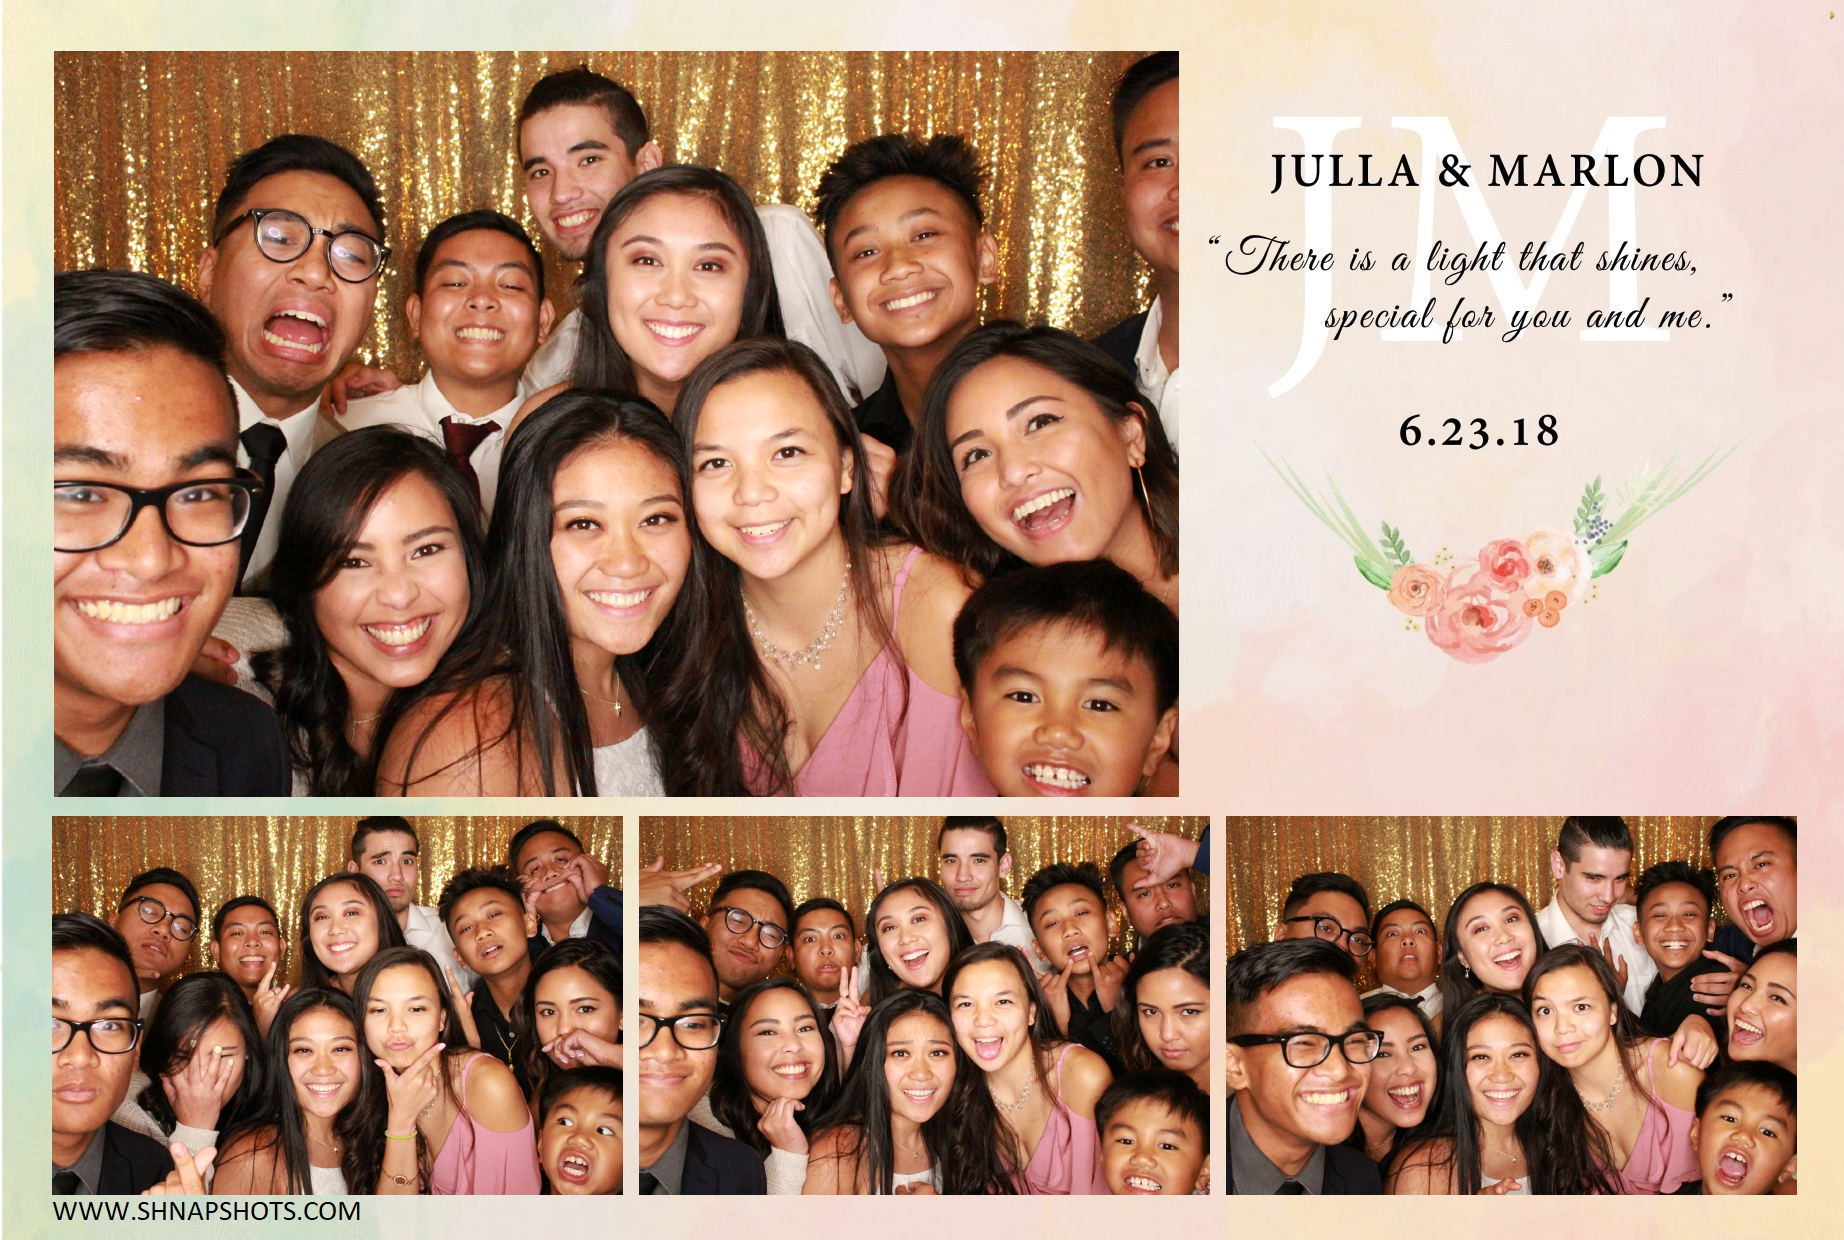 Julla & Marlon Wedding